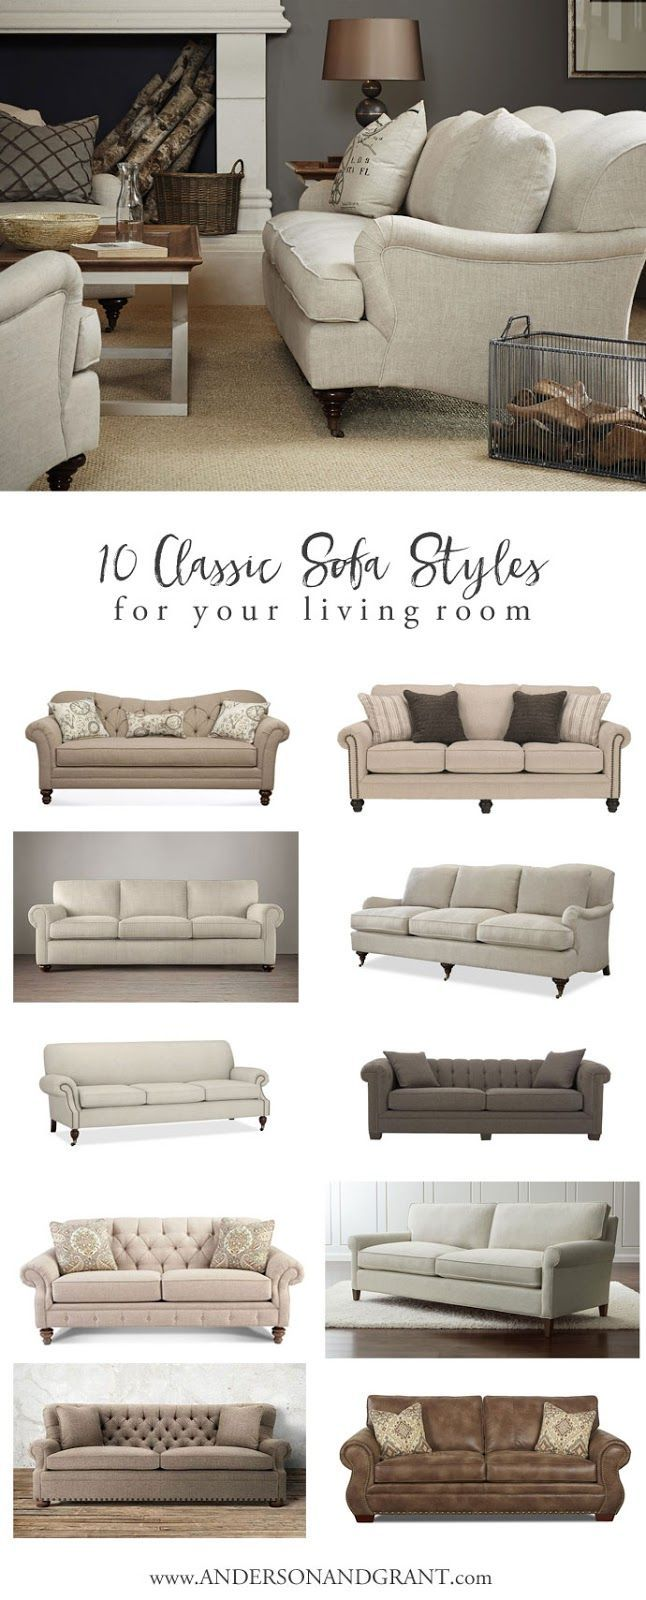 Living Room Couches best 20+ living room couches ideas on pinterest | gray couch